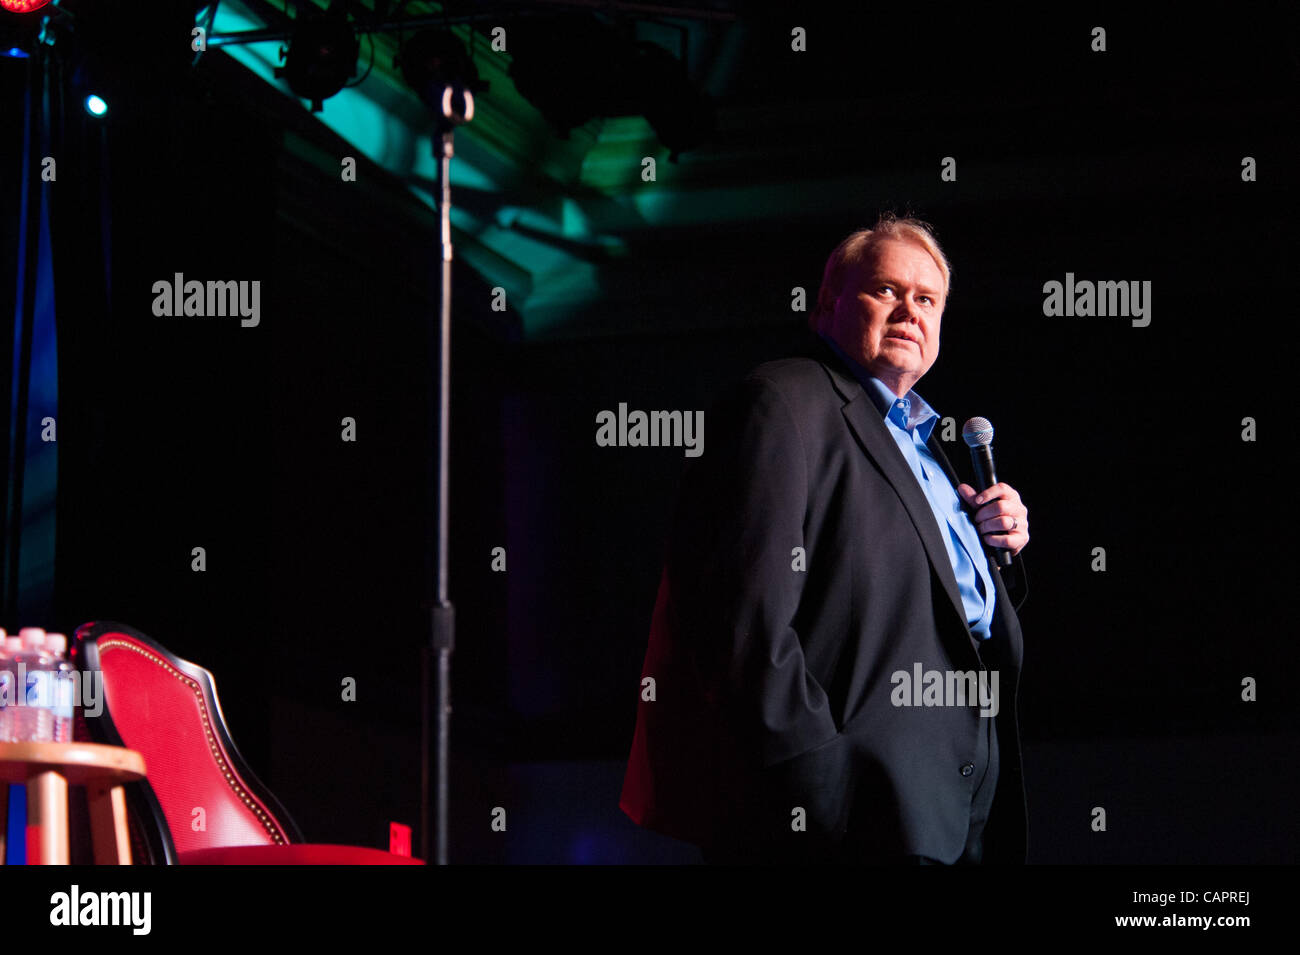 LINCOLN, CA - April 7: Louie Anderson performs at Thunder Valley Casino Resort in Lincoln, California on April 7, - Stock Image